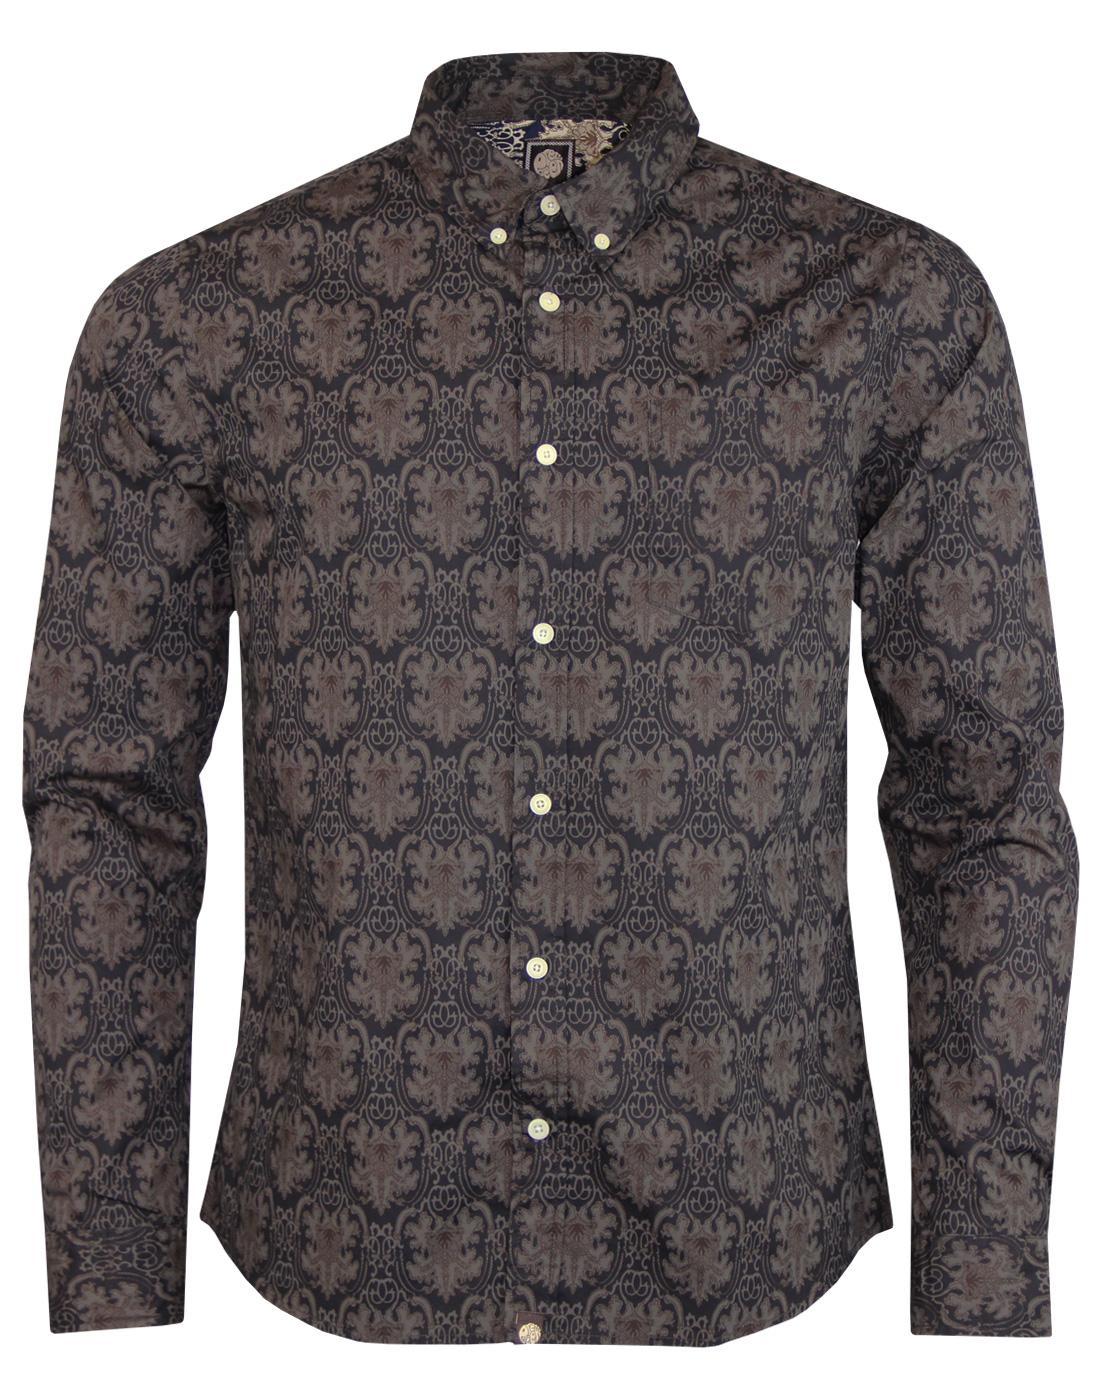 Wardour PRETTY GREEN Mod Abstract Print Shirt (B)